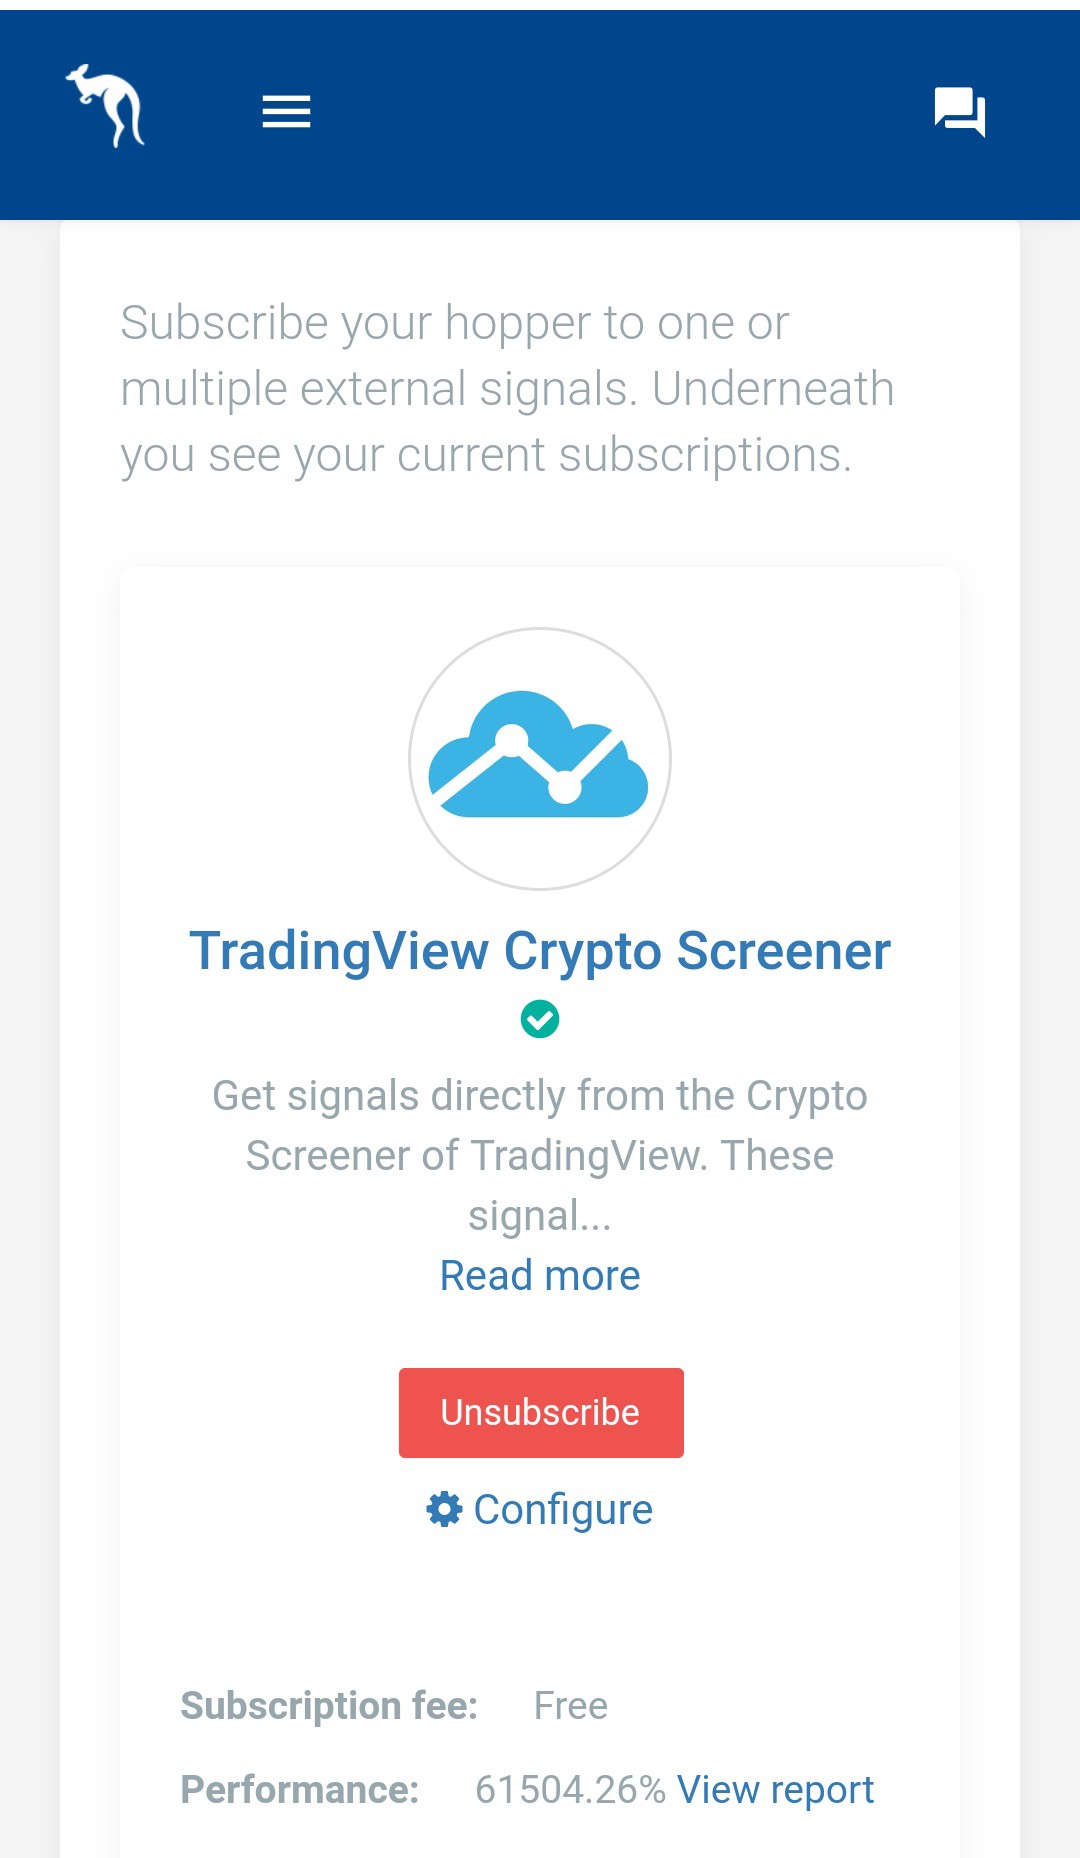 How to use this little-known feature of Tradingview to pick